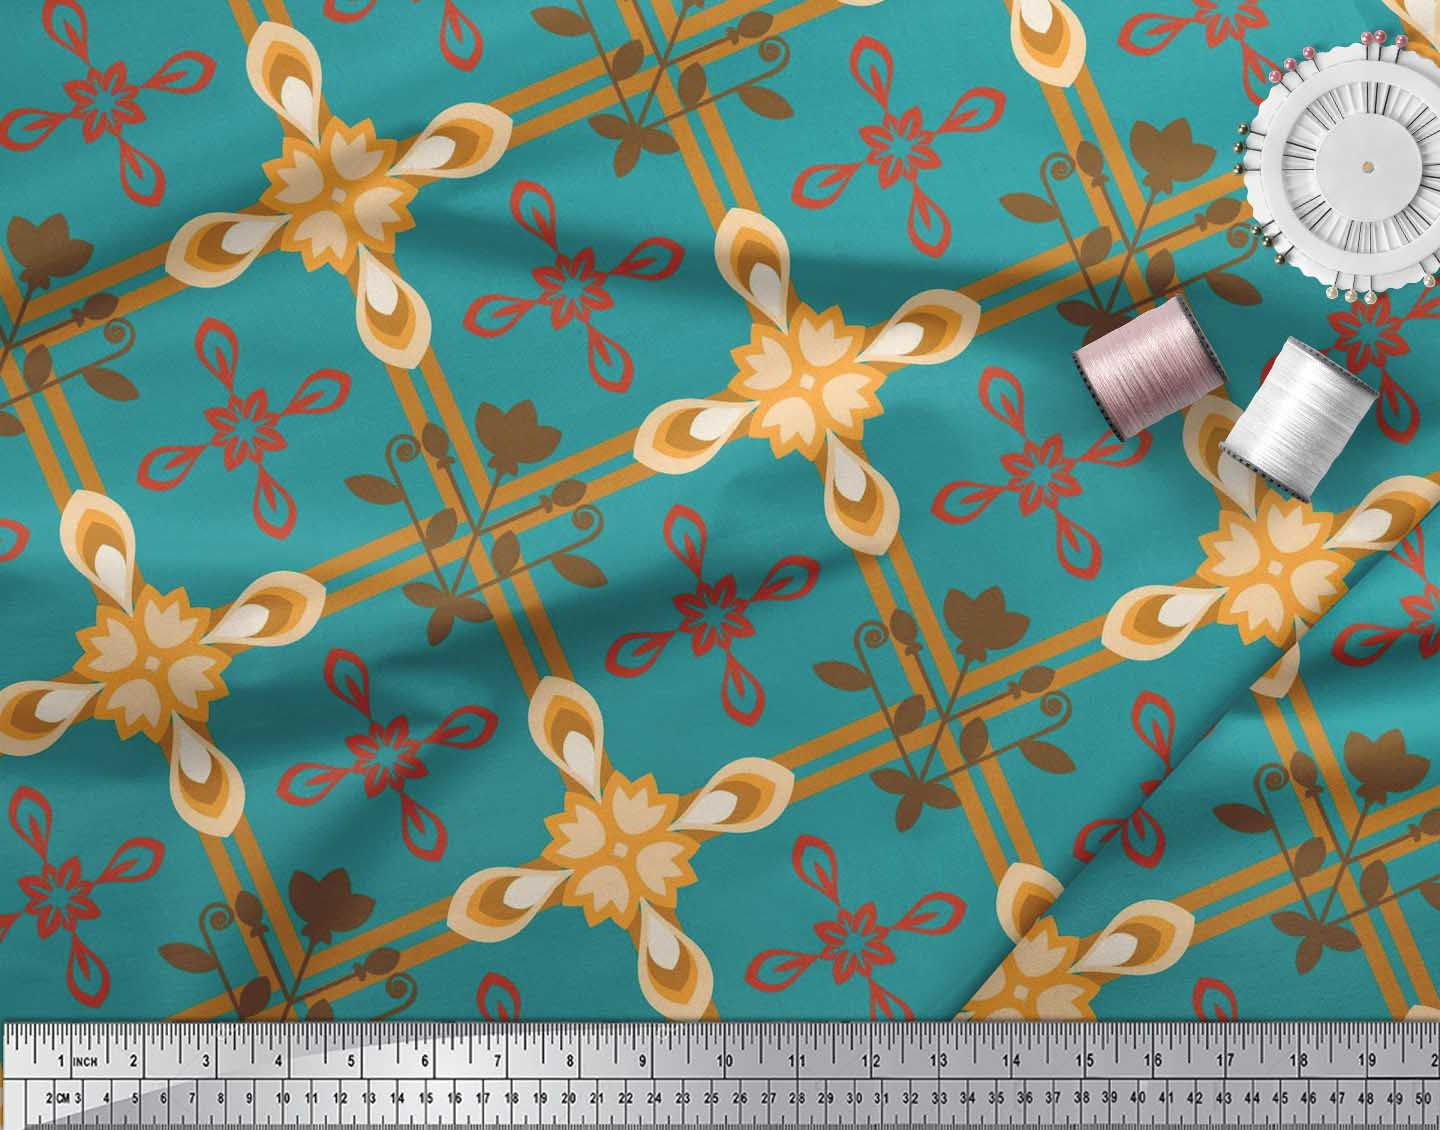 Soimoi-Cotton-Poplin-Fabric-Argyle-Check-Print-Fabric-by-metre-42-Ylm thumbnail 4